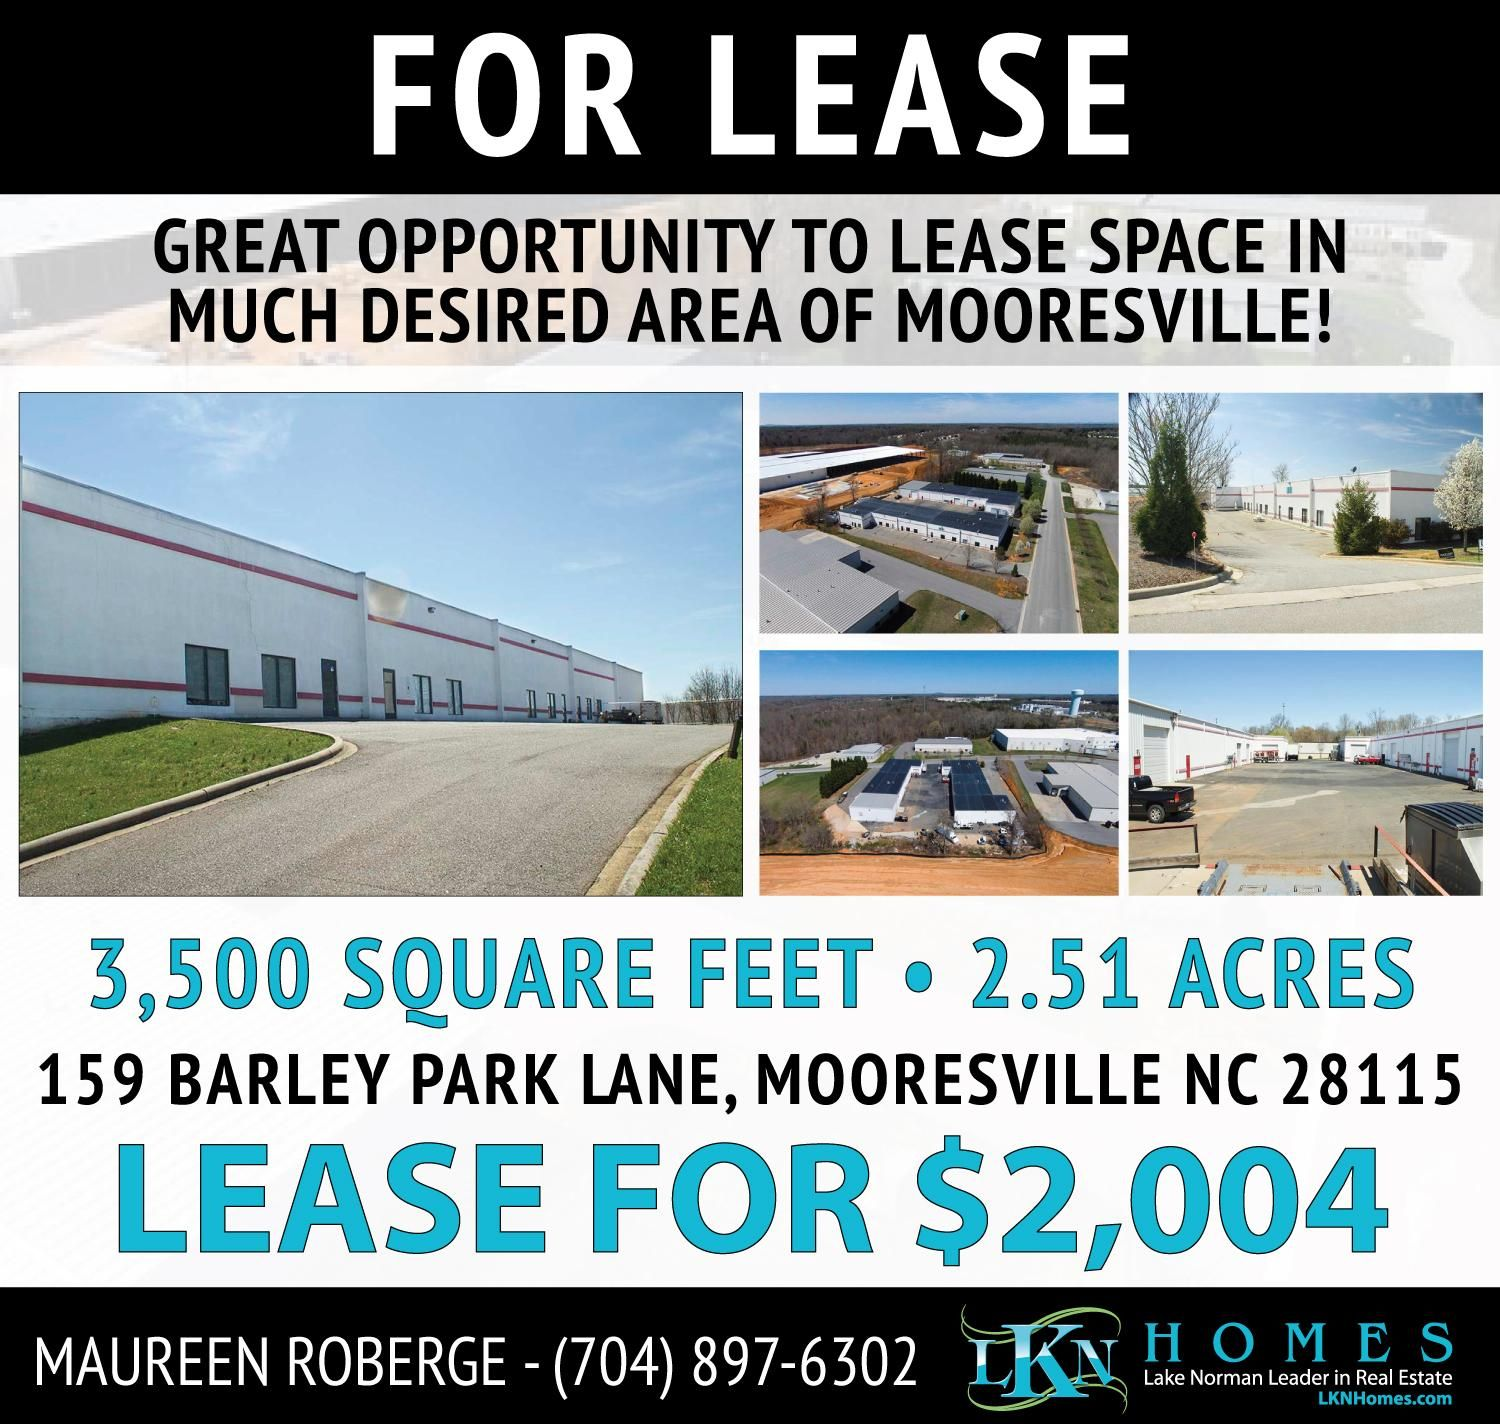 Grrat Opportunity To Lease Space In Much Desired Mooresville